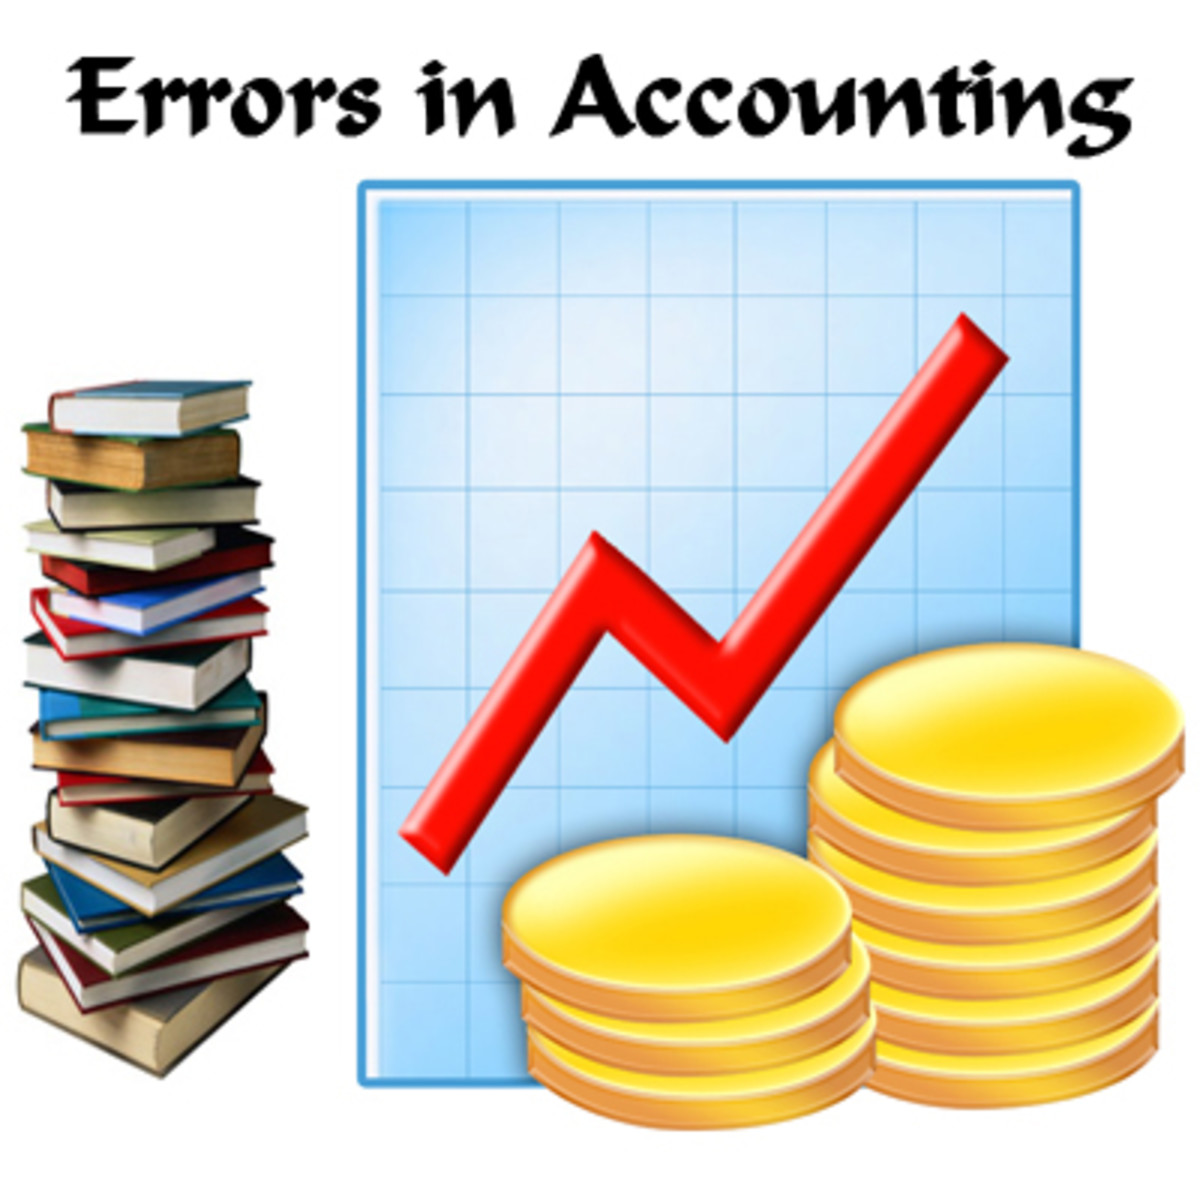 The trial balance is prepared to check the arithmetical accuracy of